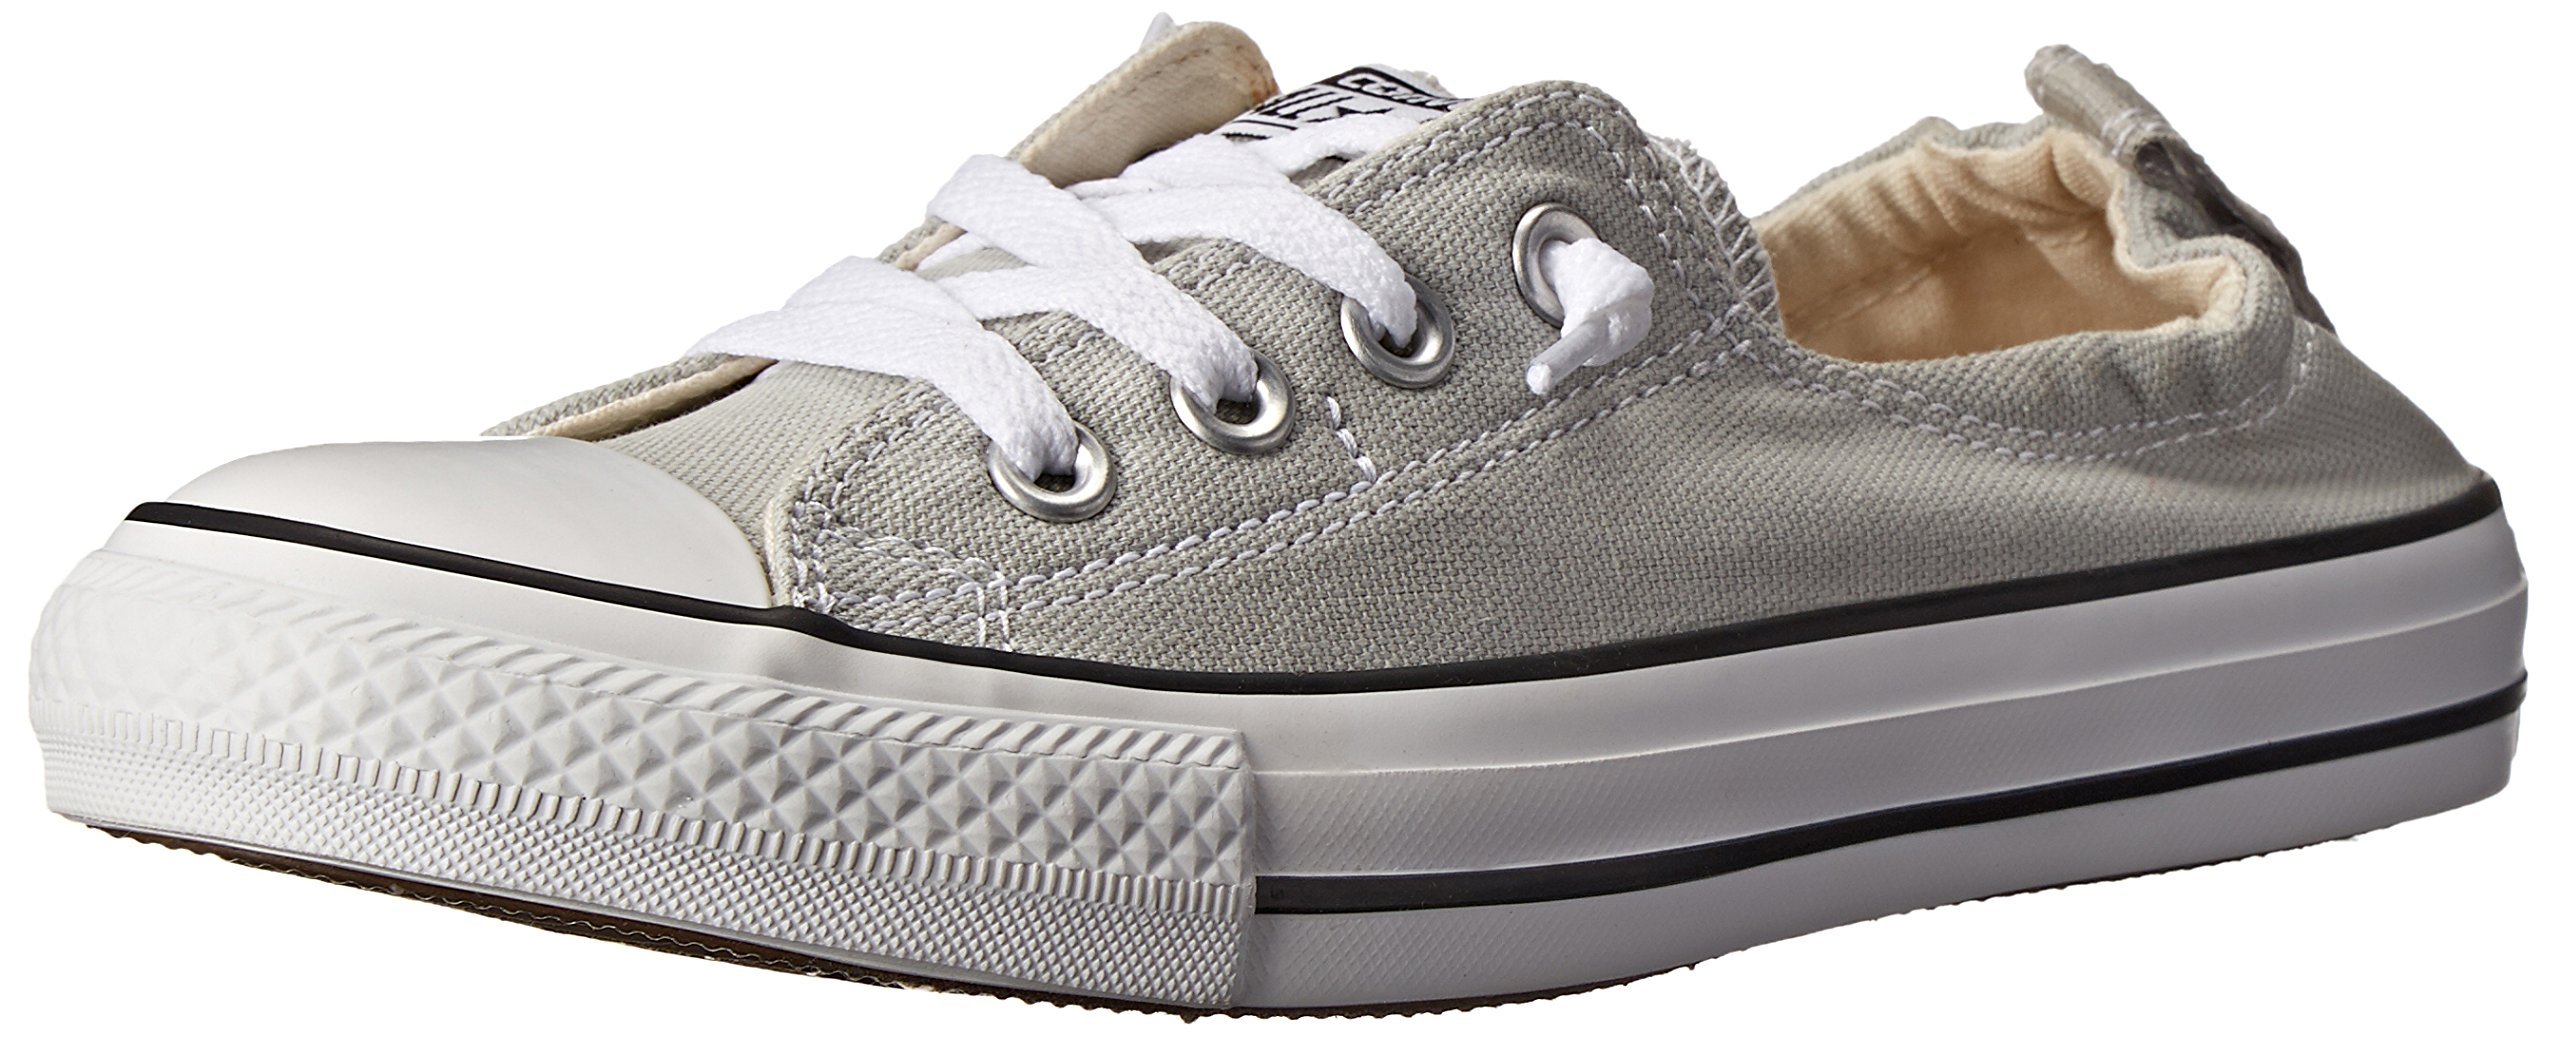 b9acd49c881fc Converse Chuck Taylor All Star Shoreline Gray Lace-Up Sneaker - 5.5 B(M) US